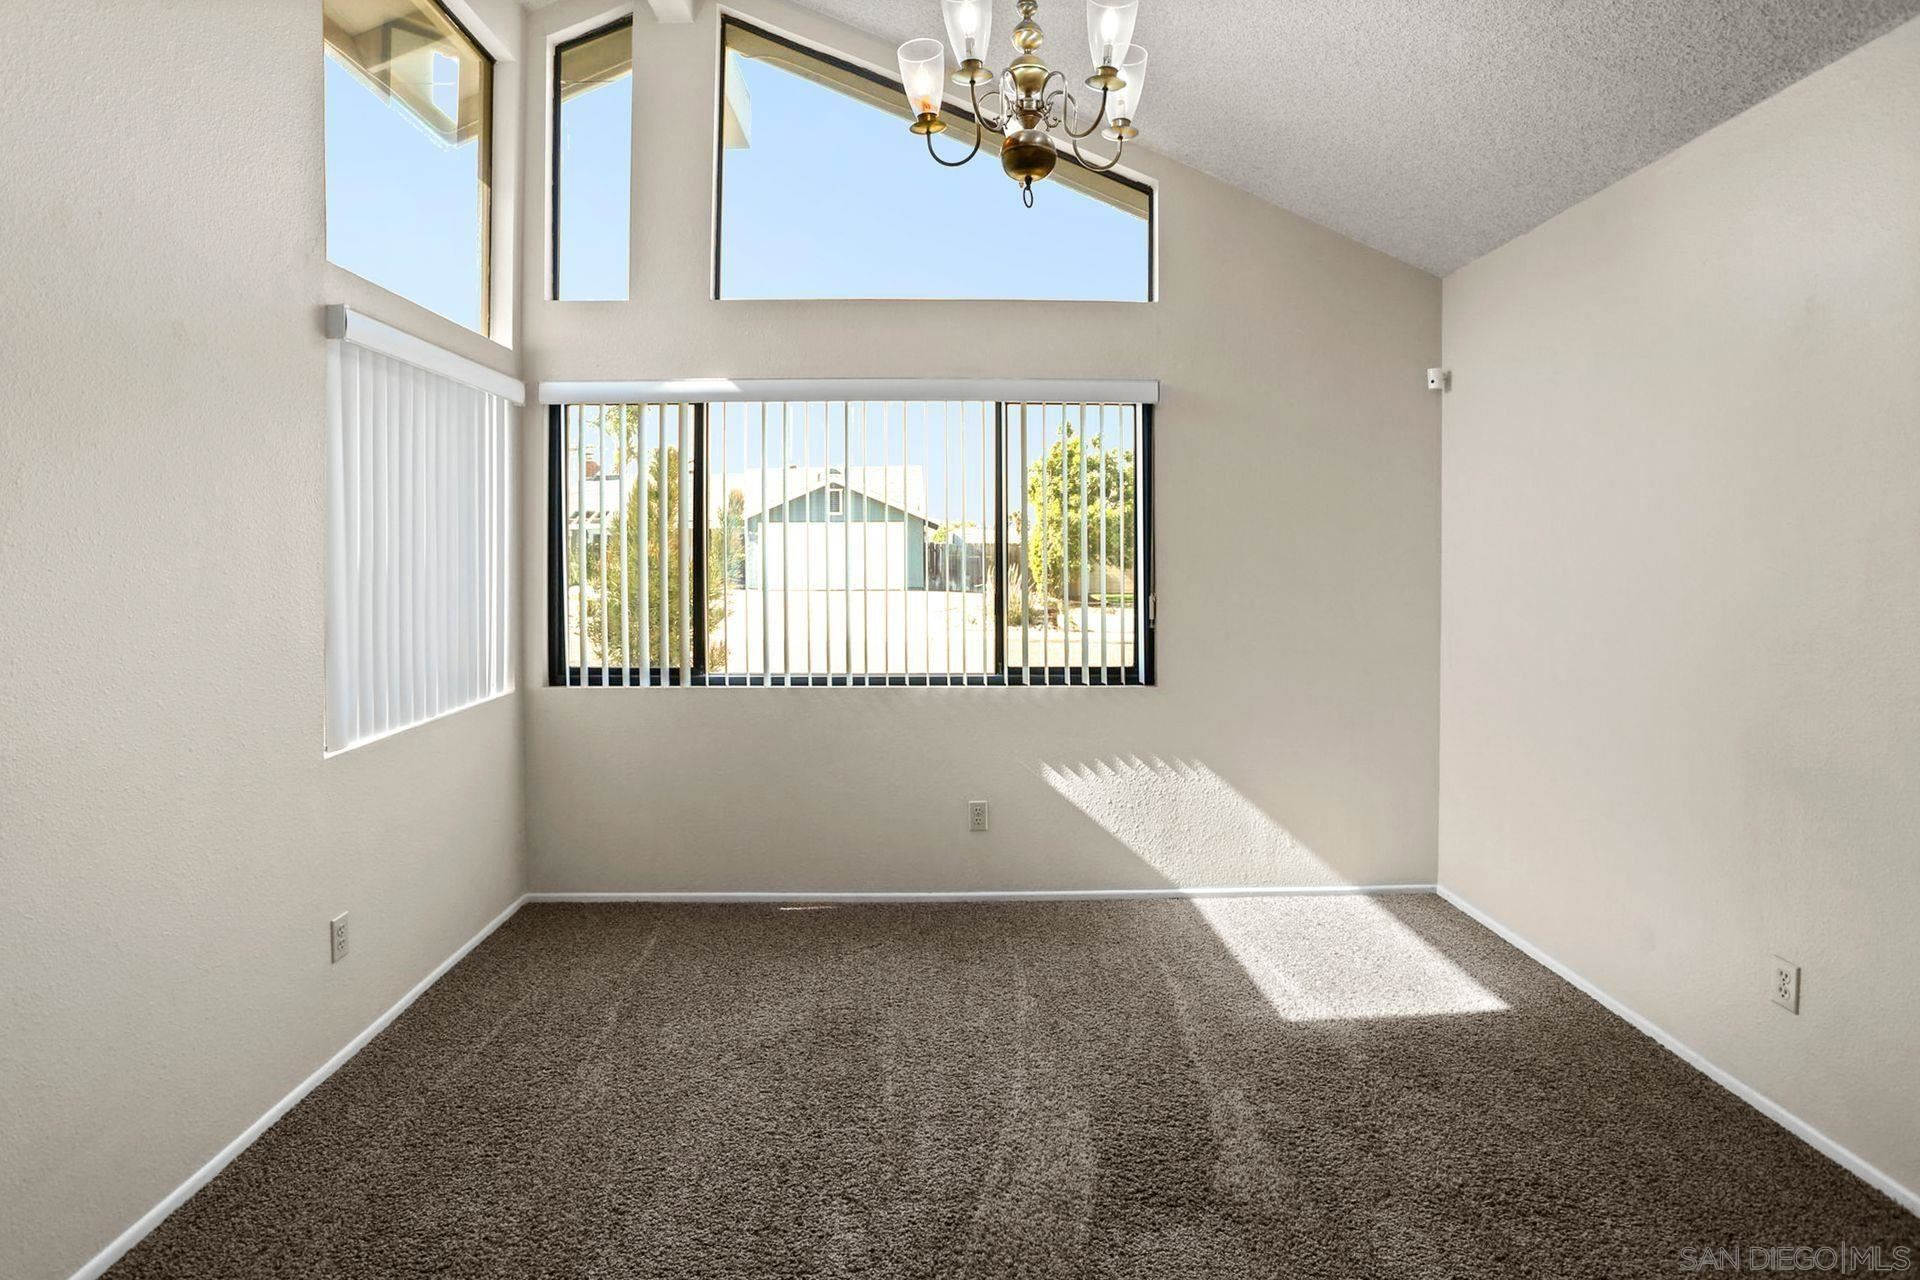 Photo of 10246 Easthaven Dr, Santee, CA 92071 (MLS # 210018339)